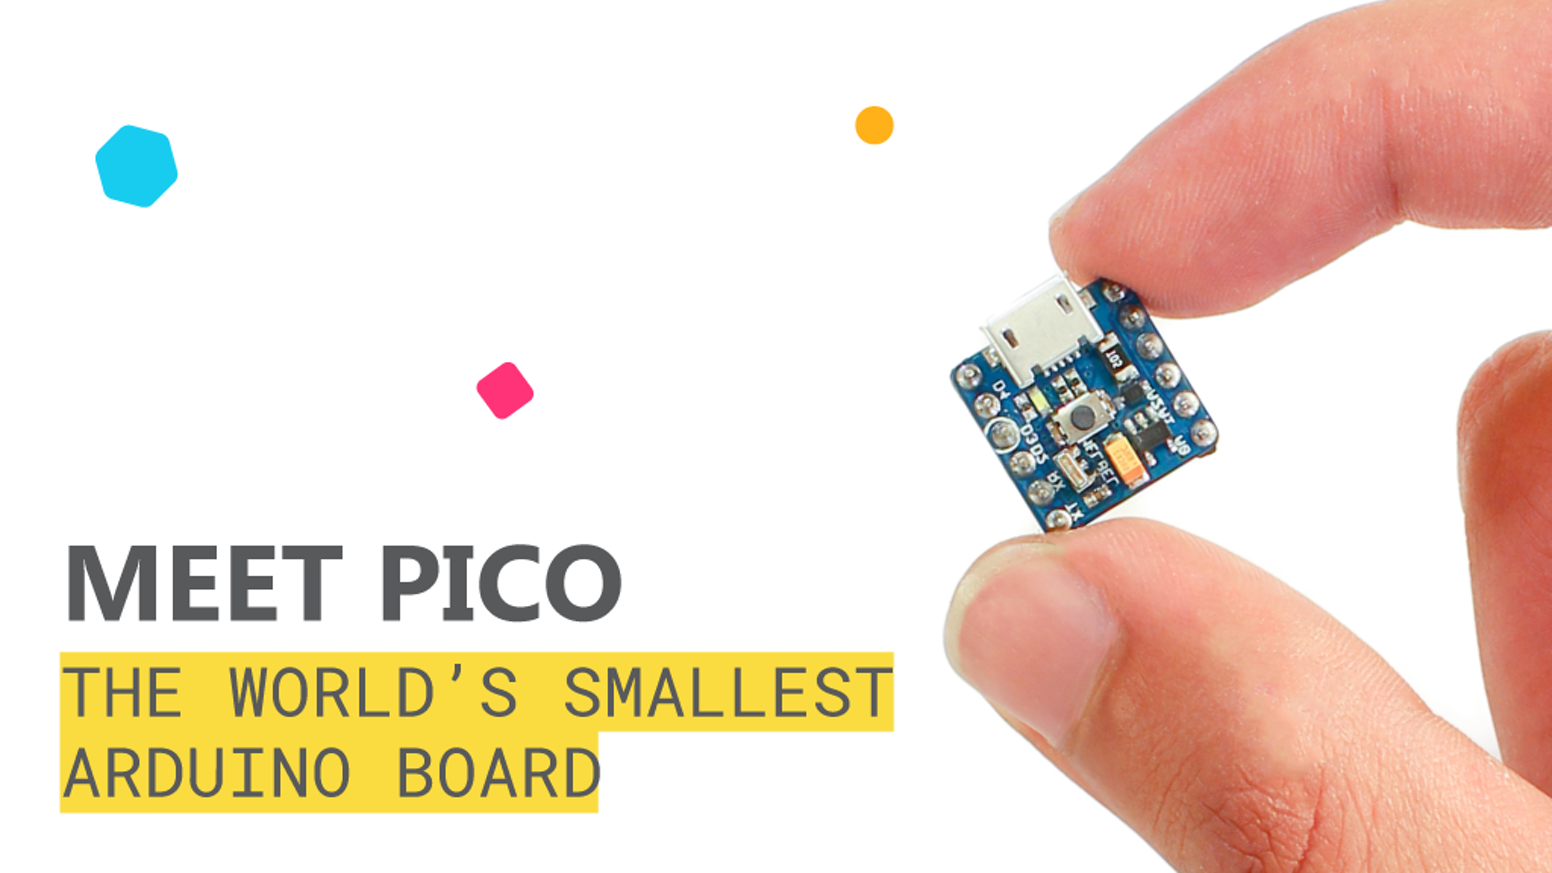 Pico The Worlds Smallest Arduino Compatible Board By Mellbell Wireless Switch Besides Remote Control Additionally Meet 06x06 That Will Change World